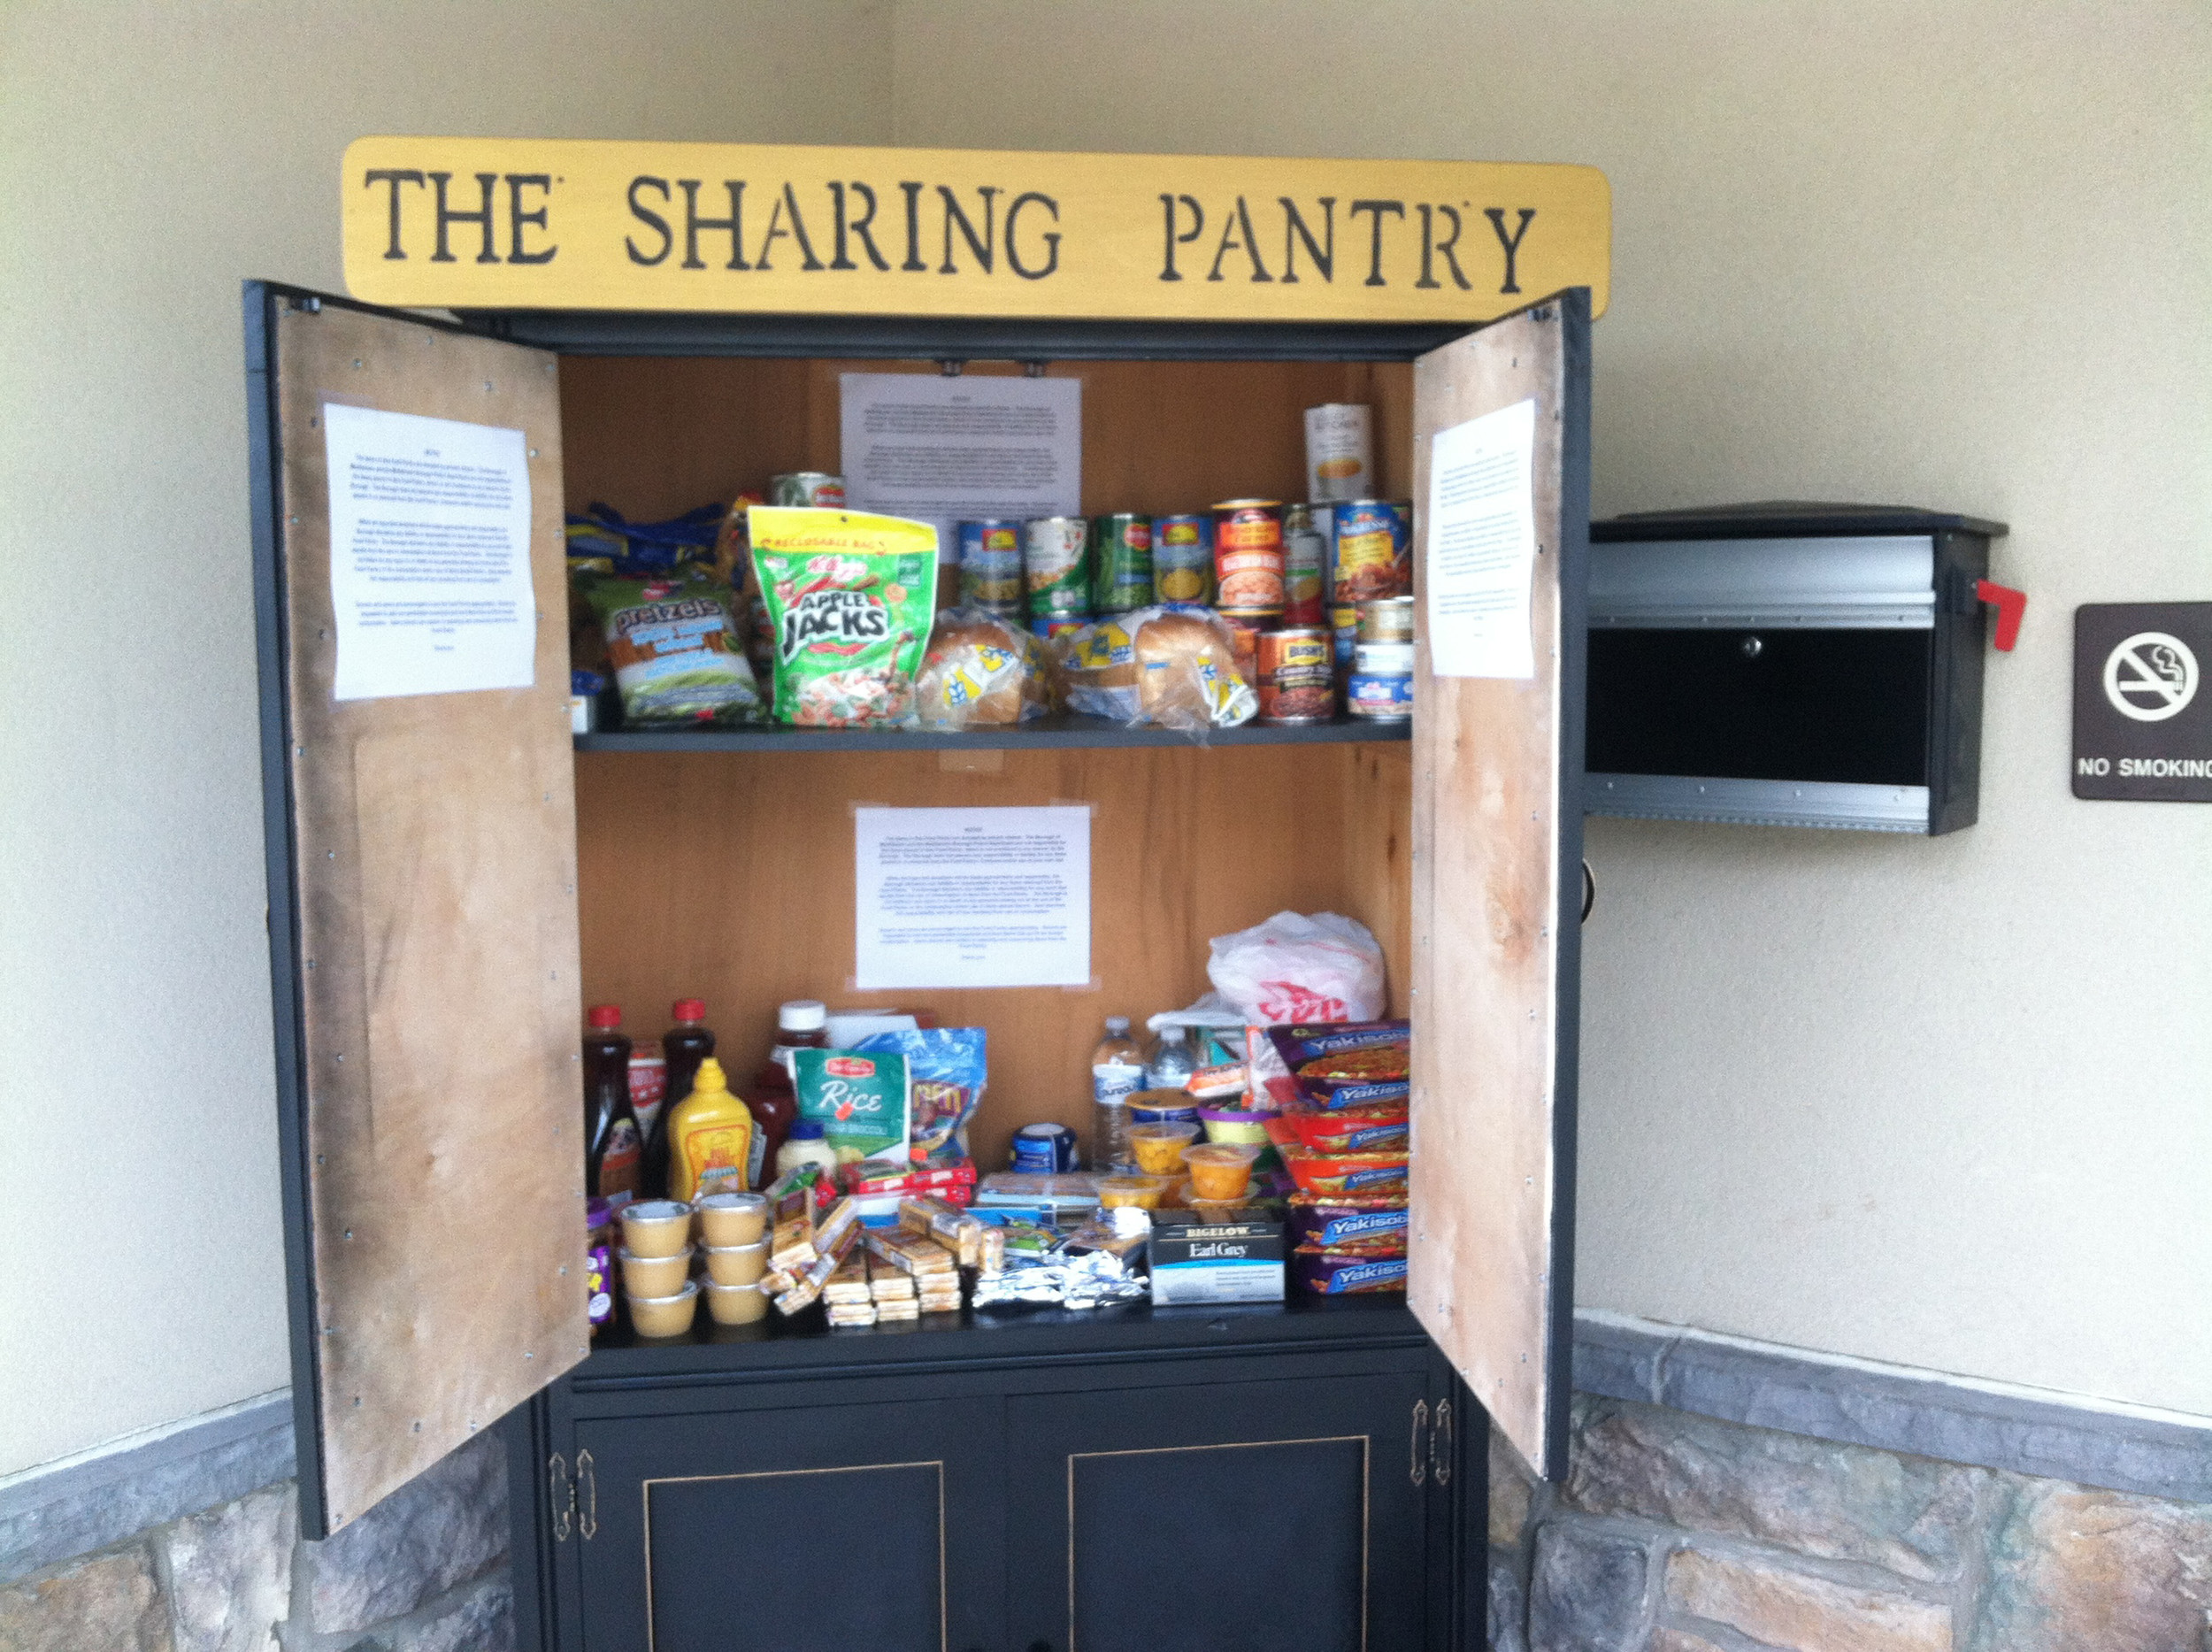 Here are the free items available to help people behind the doors of the new Little Free Sharing Pantry.